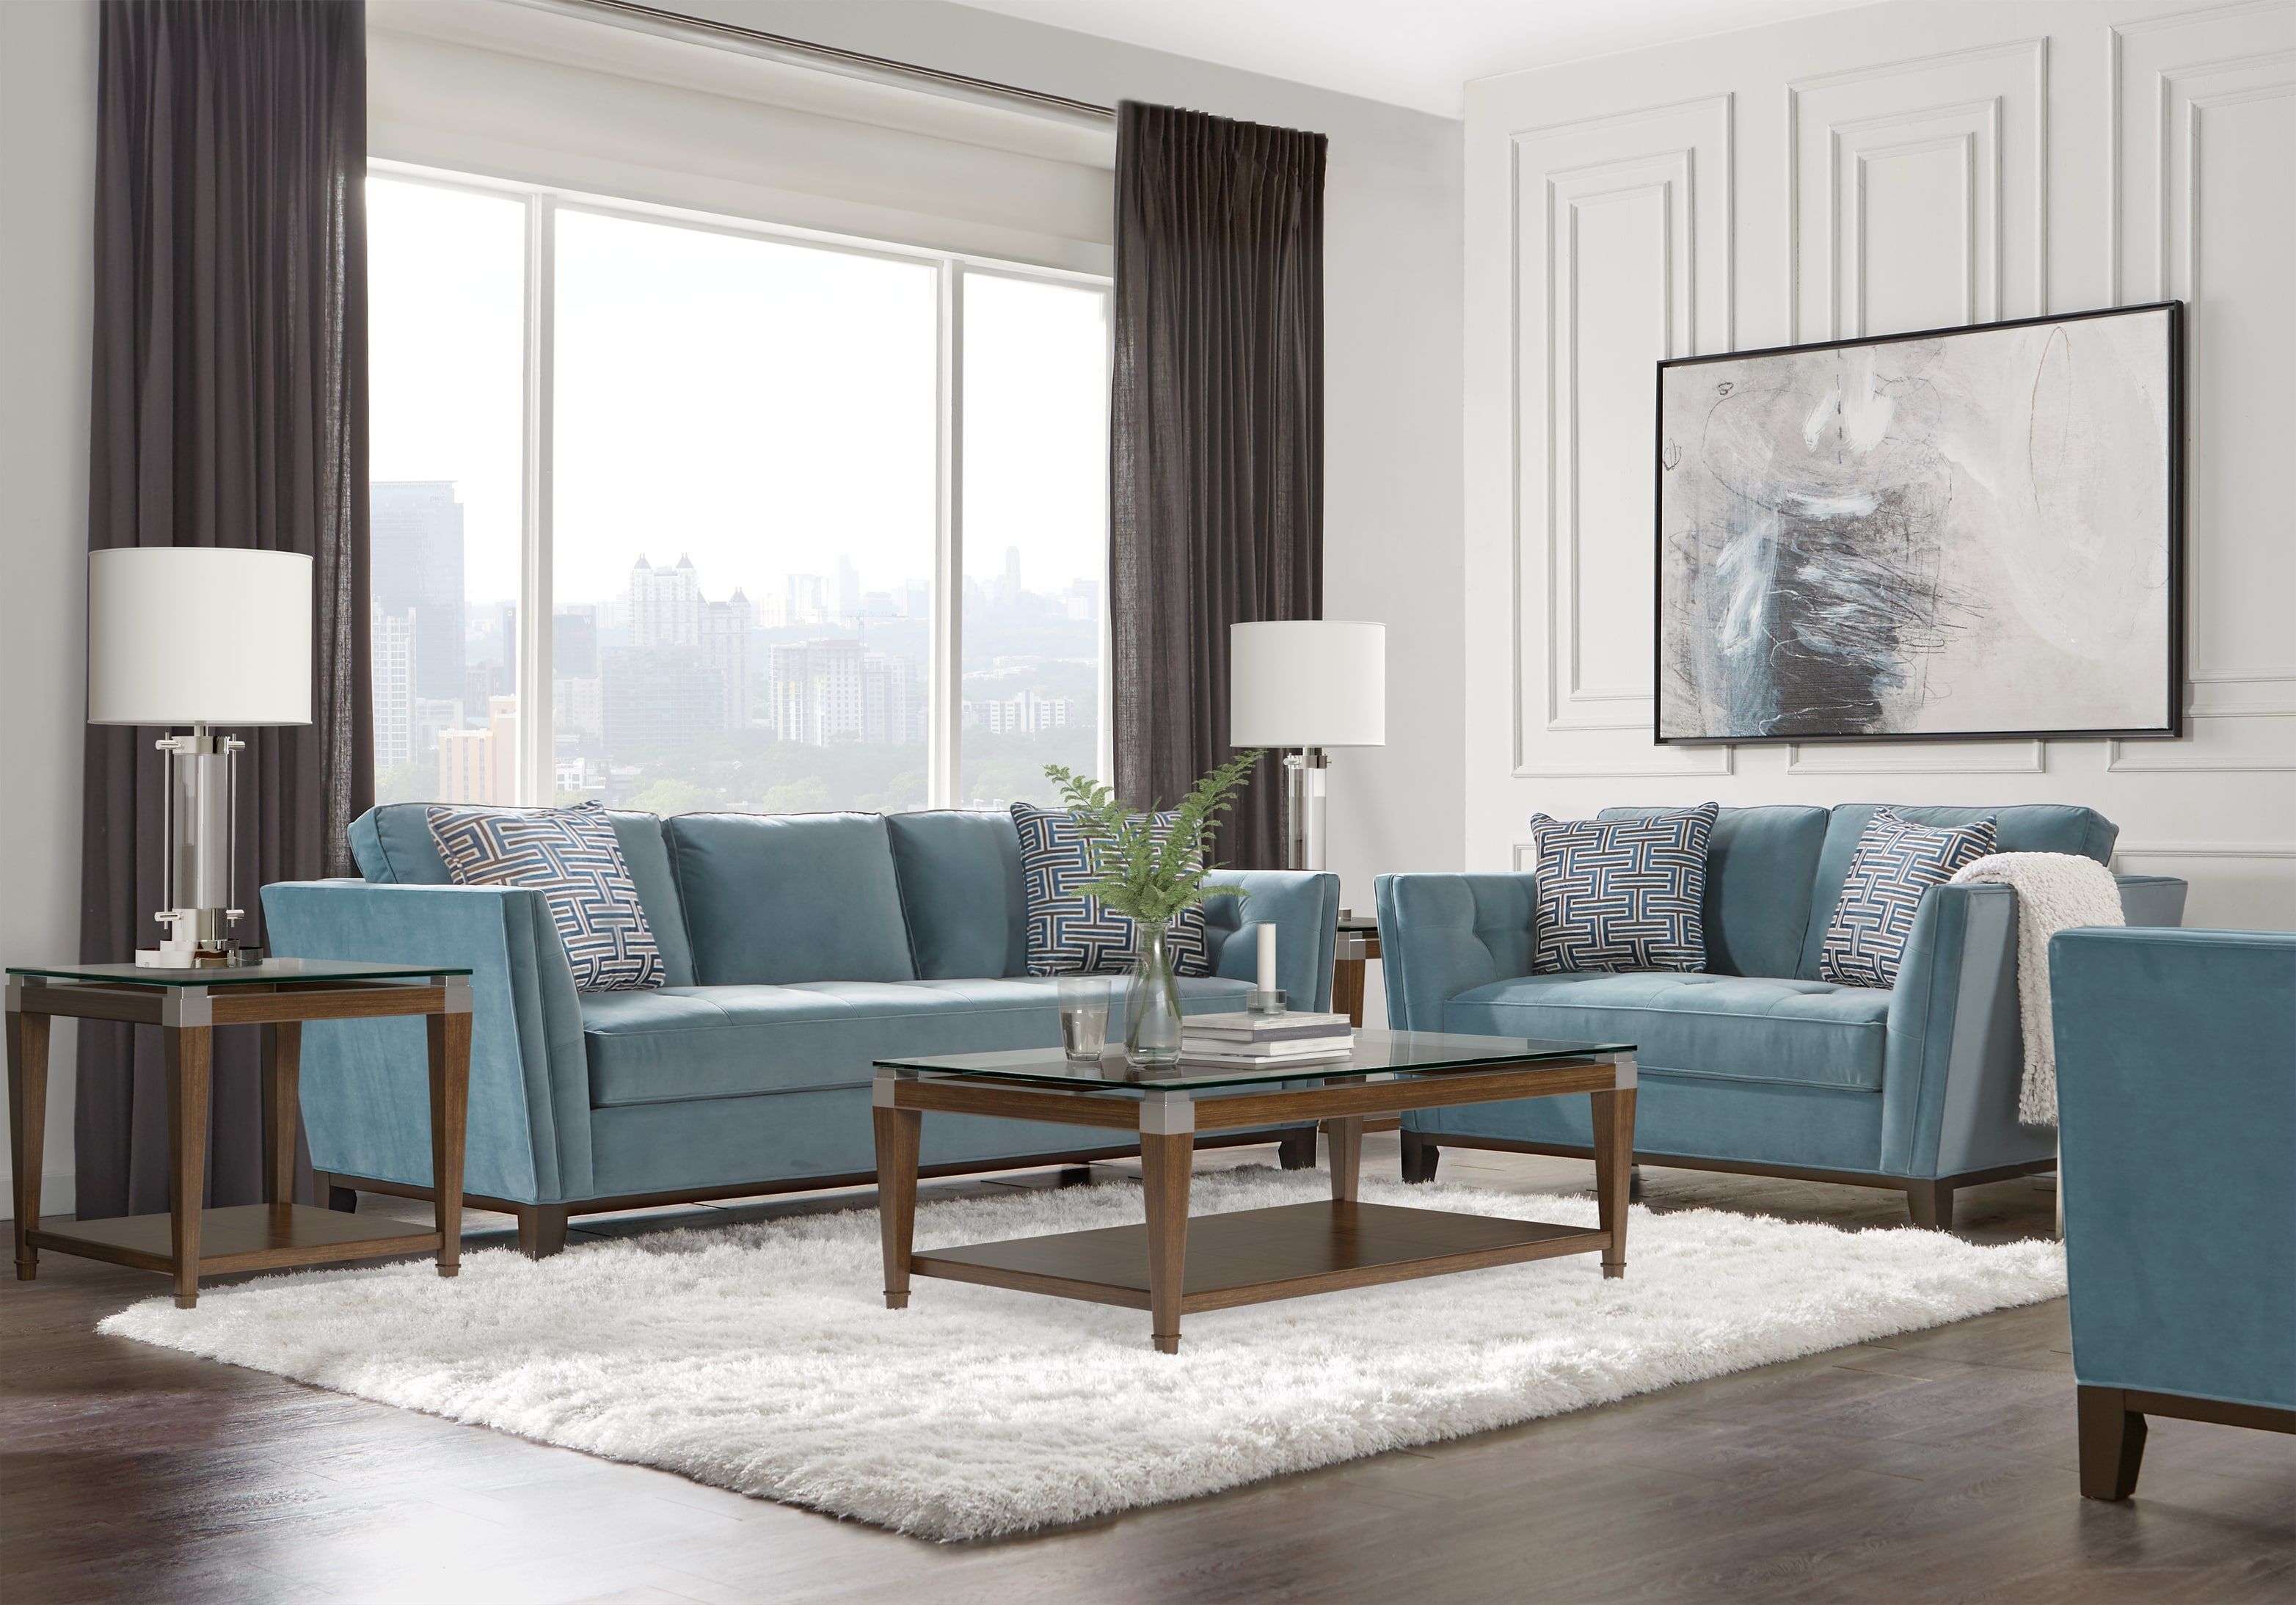 36++ Rooms to go living room sets for sale ideas in 2021